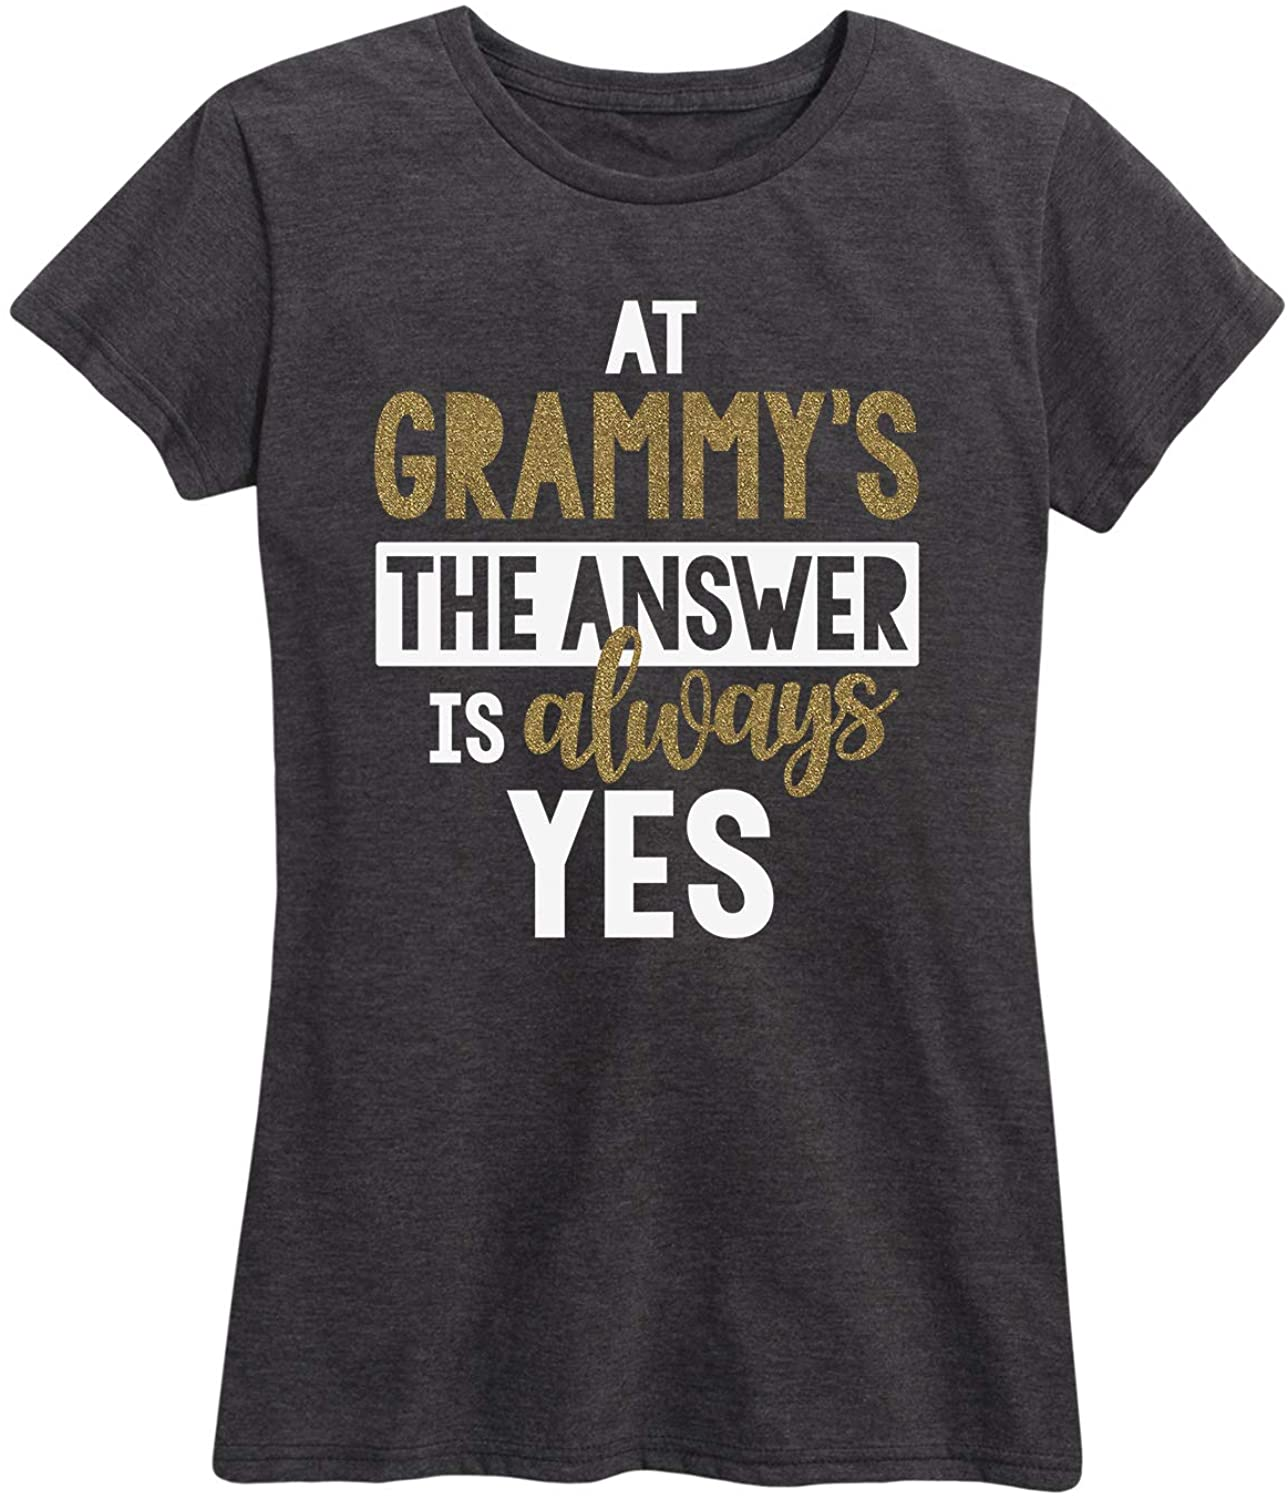 Answer is Always Yes Grammys Sparkle - Women's Short Sleeve Graphic T-Shirt